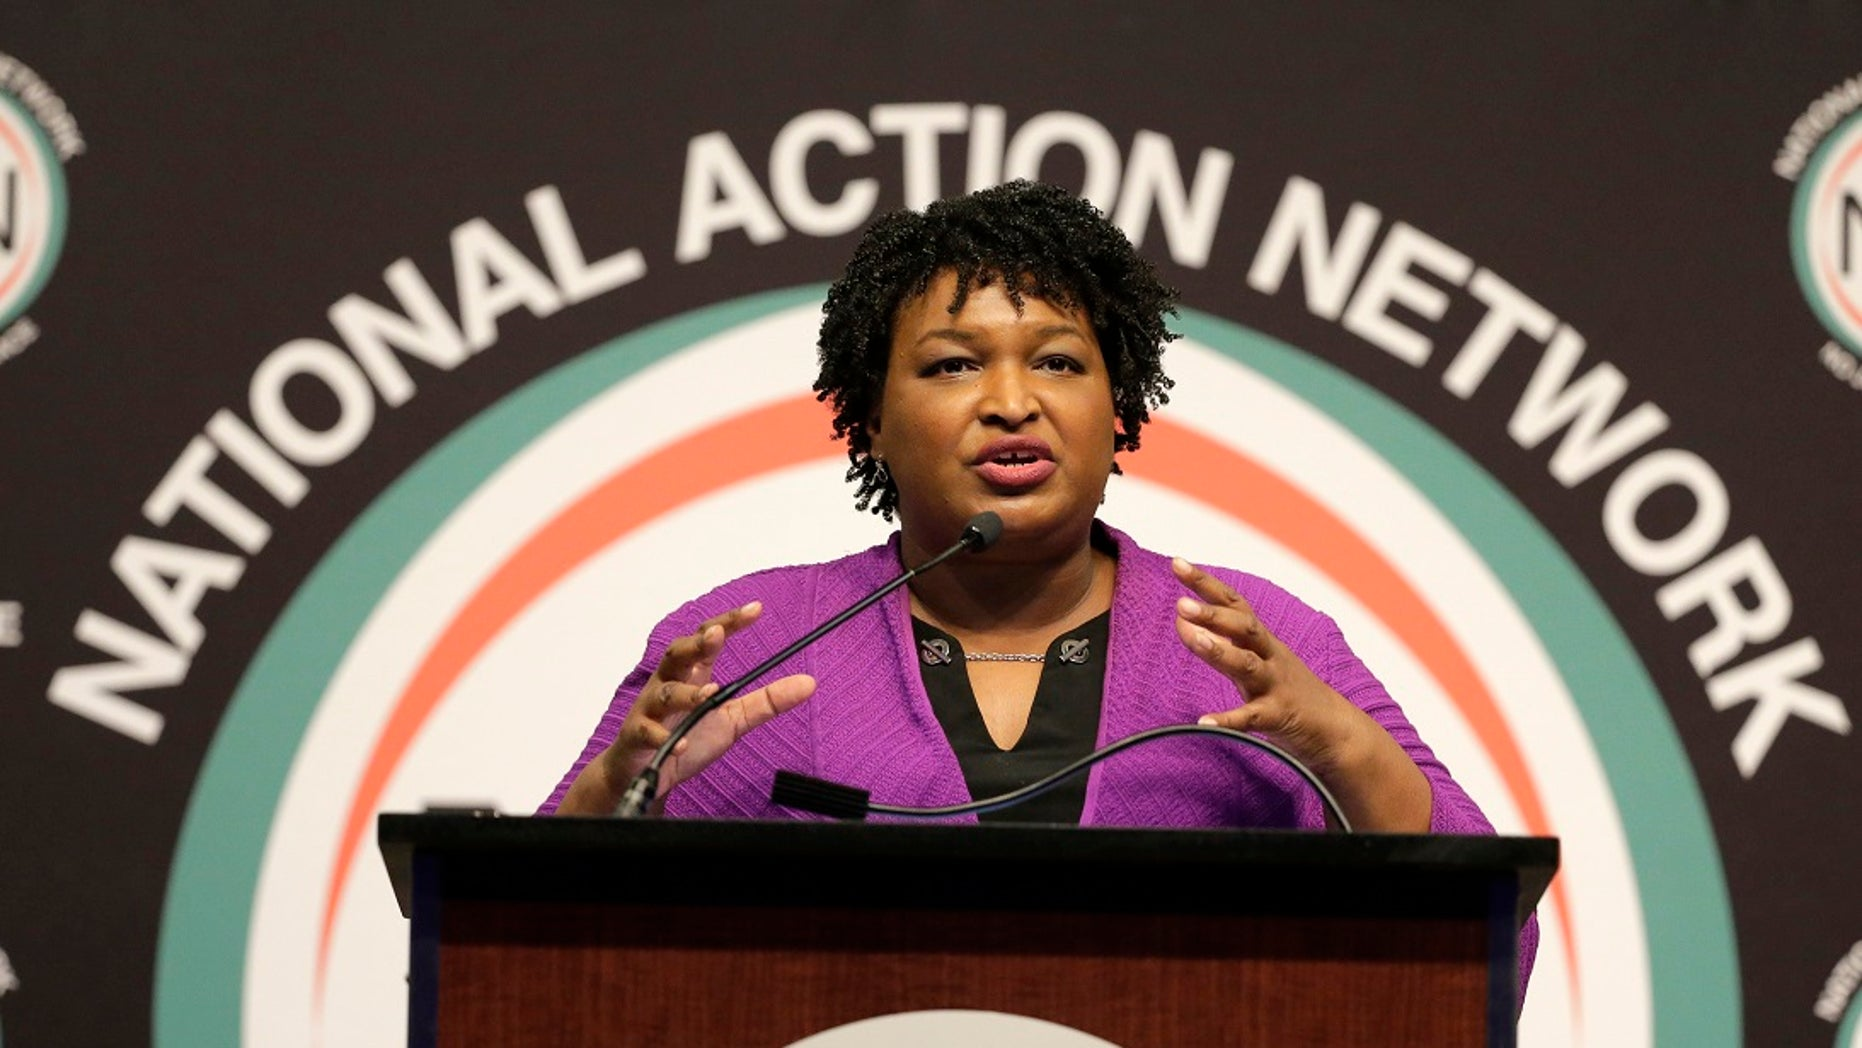 "Former Georgia's national candidate candidate Stacey Abrams speaks at the National Action Network Convention in New York City, April 3, 201<div class=""e3lan e3lan-in-post1""><script async src=""//pagead2.googlesyndication.com/pagead/js/adsbygoogle.js""></script>